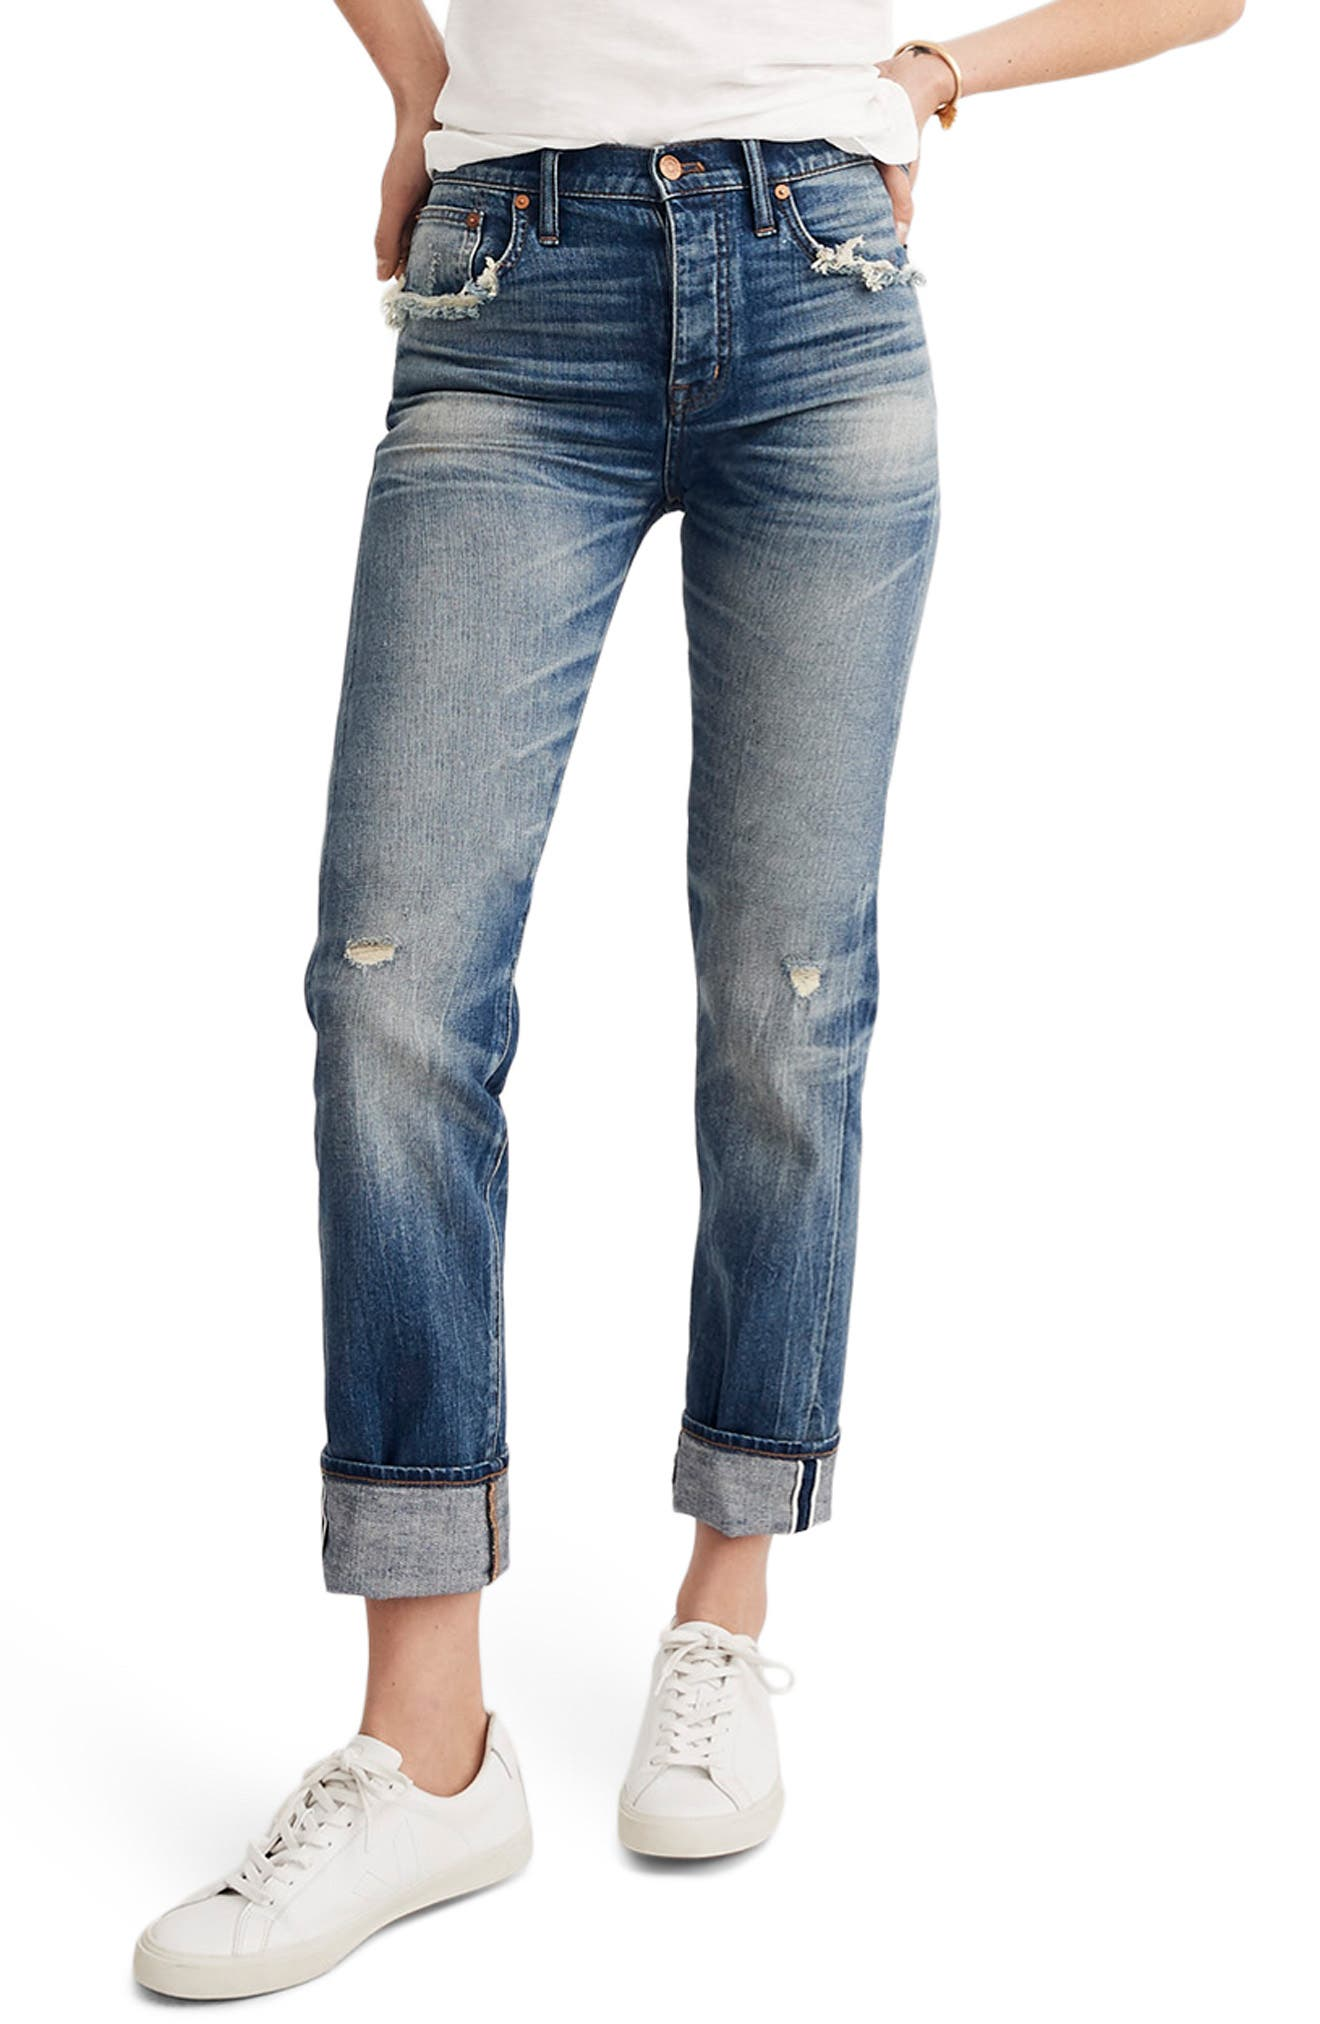 MADEWELL, Selvedge Distressed Straight Leg Jeans, Main thumbnail 1, color, CLOVERDALE